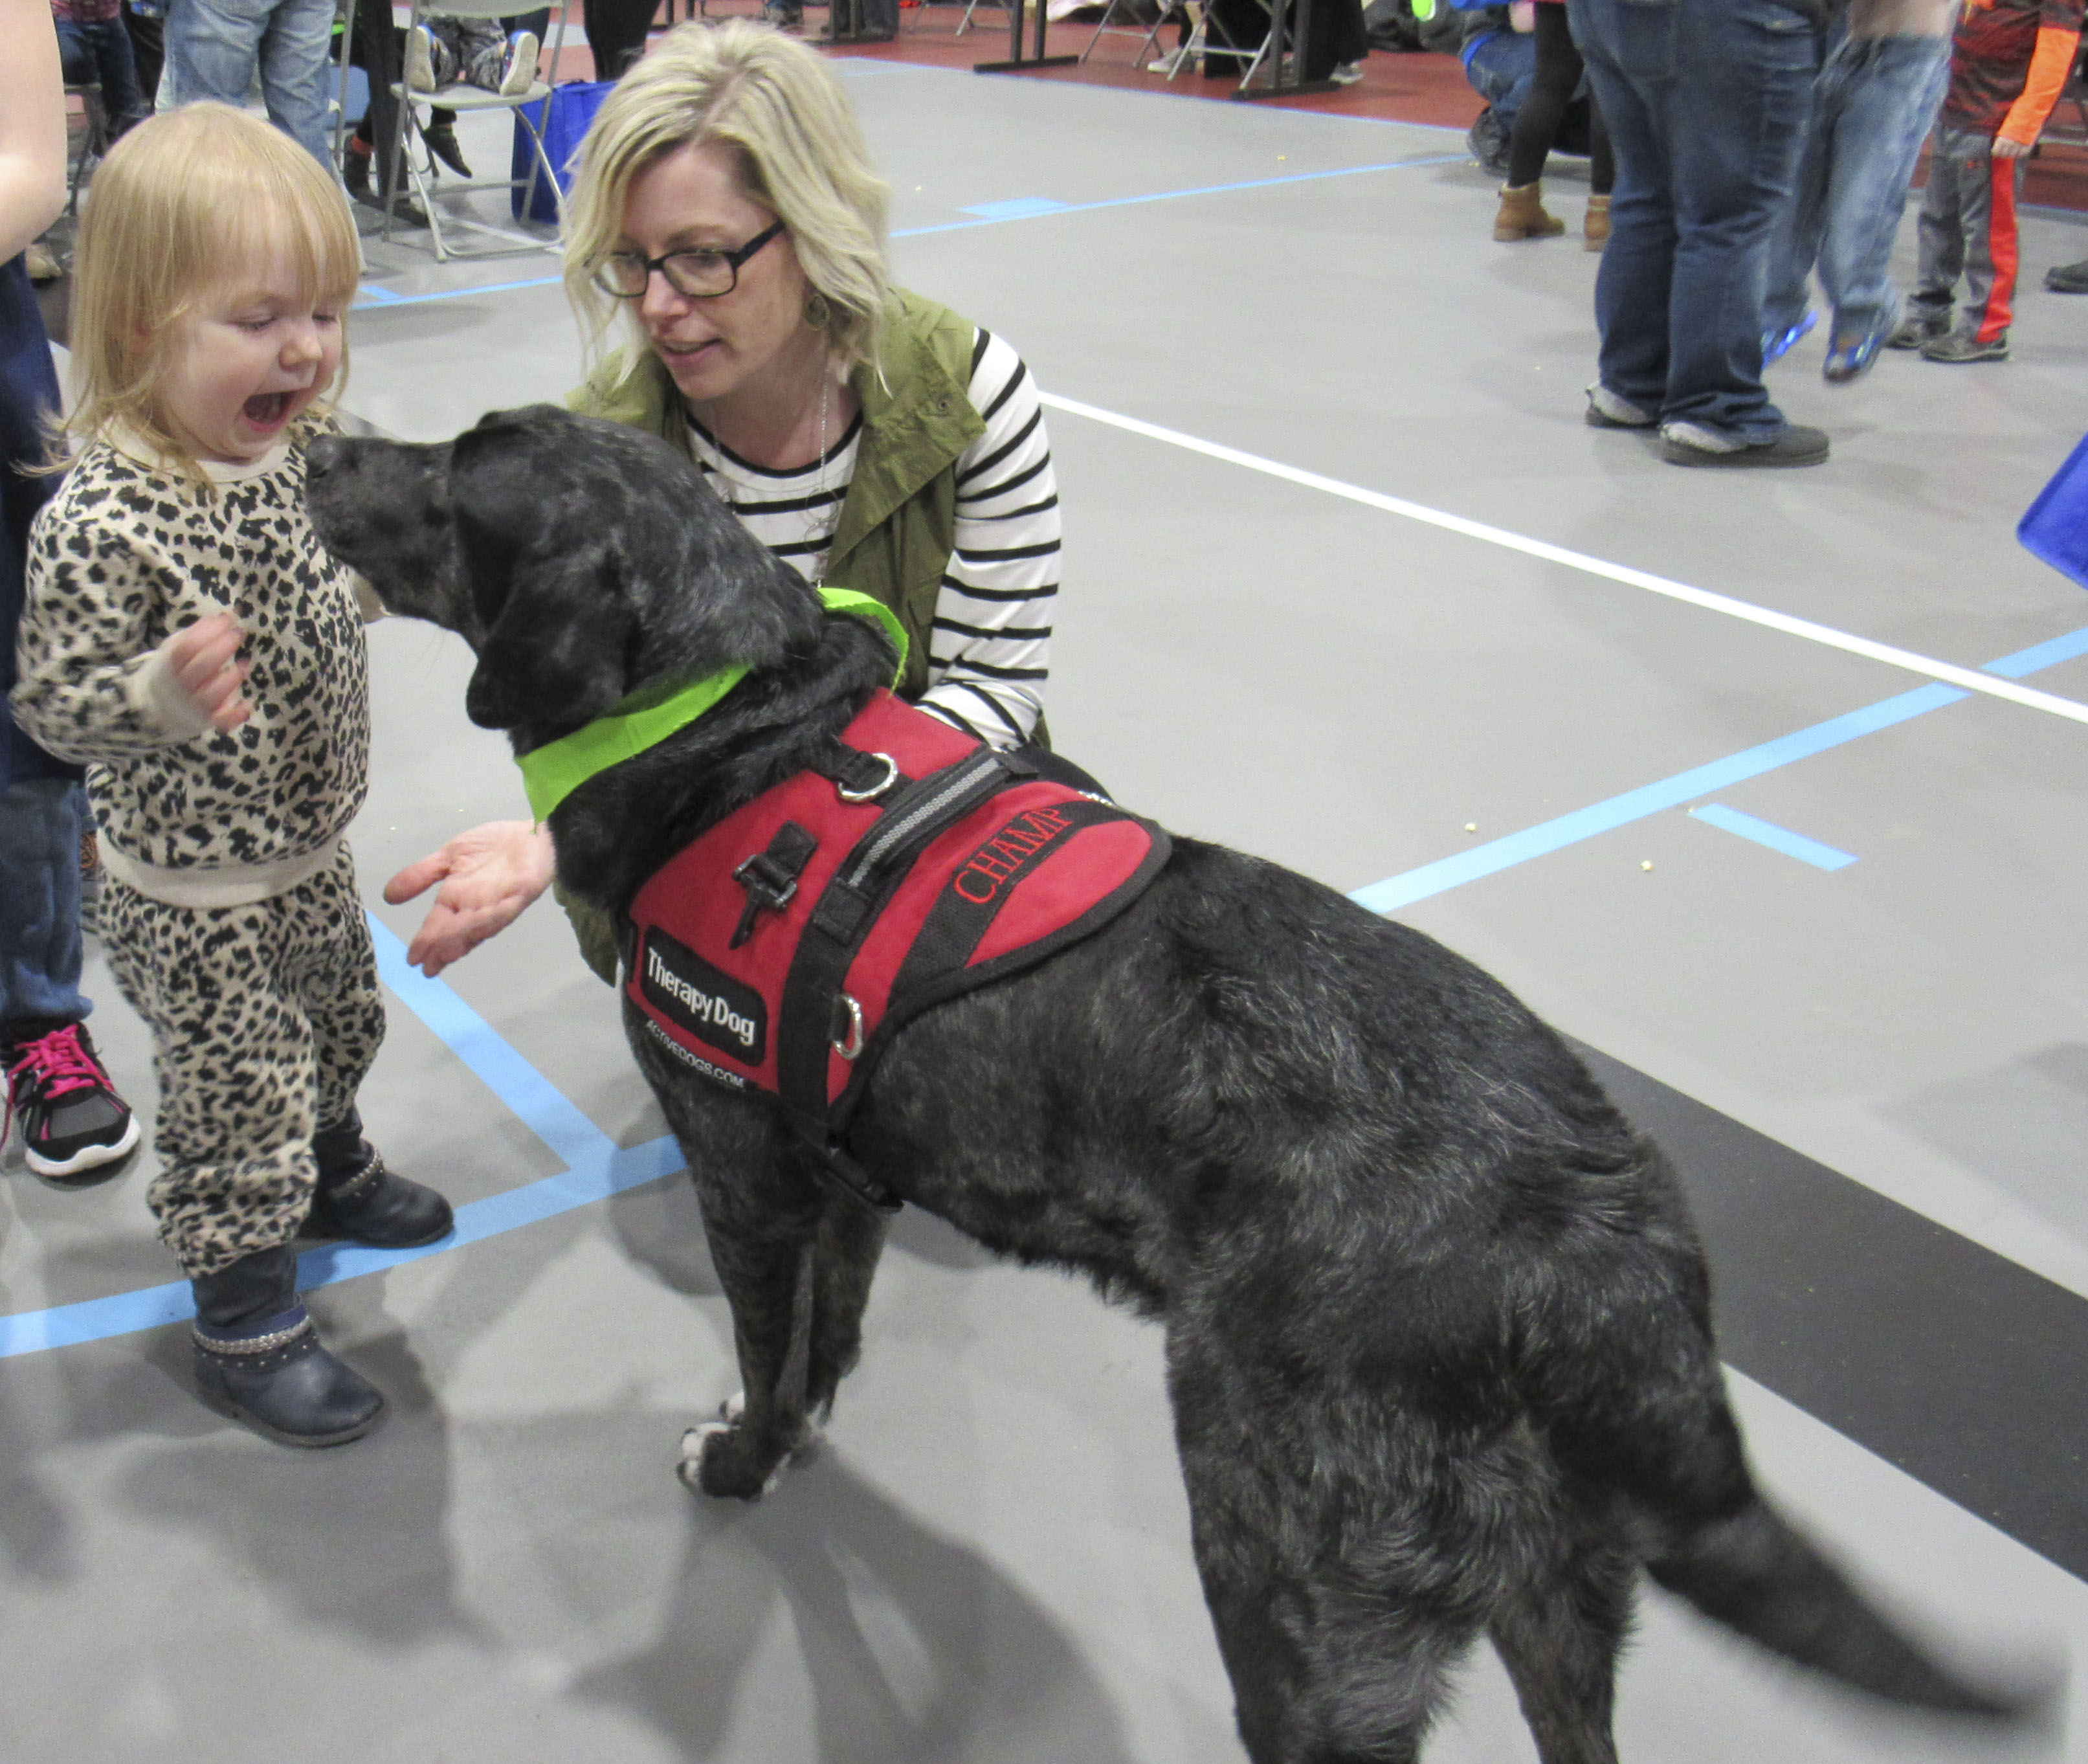 Kota Gatena enjoys meeting Champ the Therapy Dog, along with his owner, Elementary School Counselor Aimee Hospodarsky. Several kids greeted Champ during Family Fun Night at the Berndes Center.